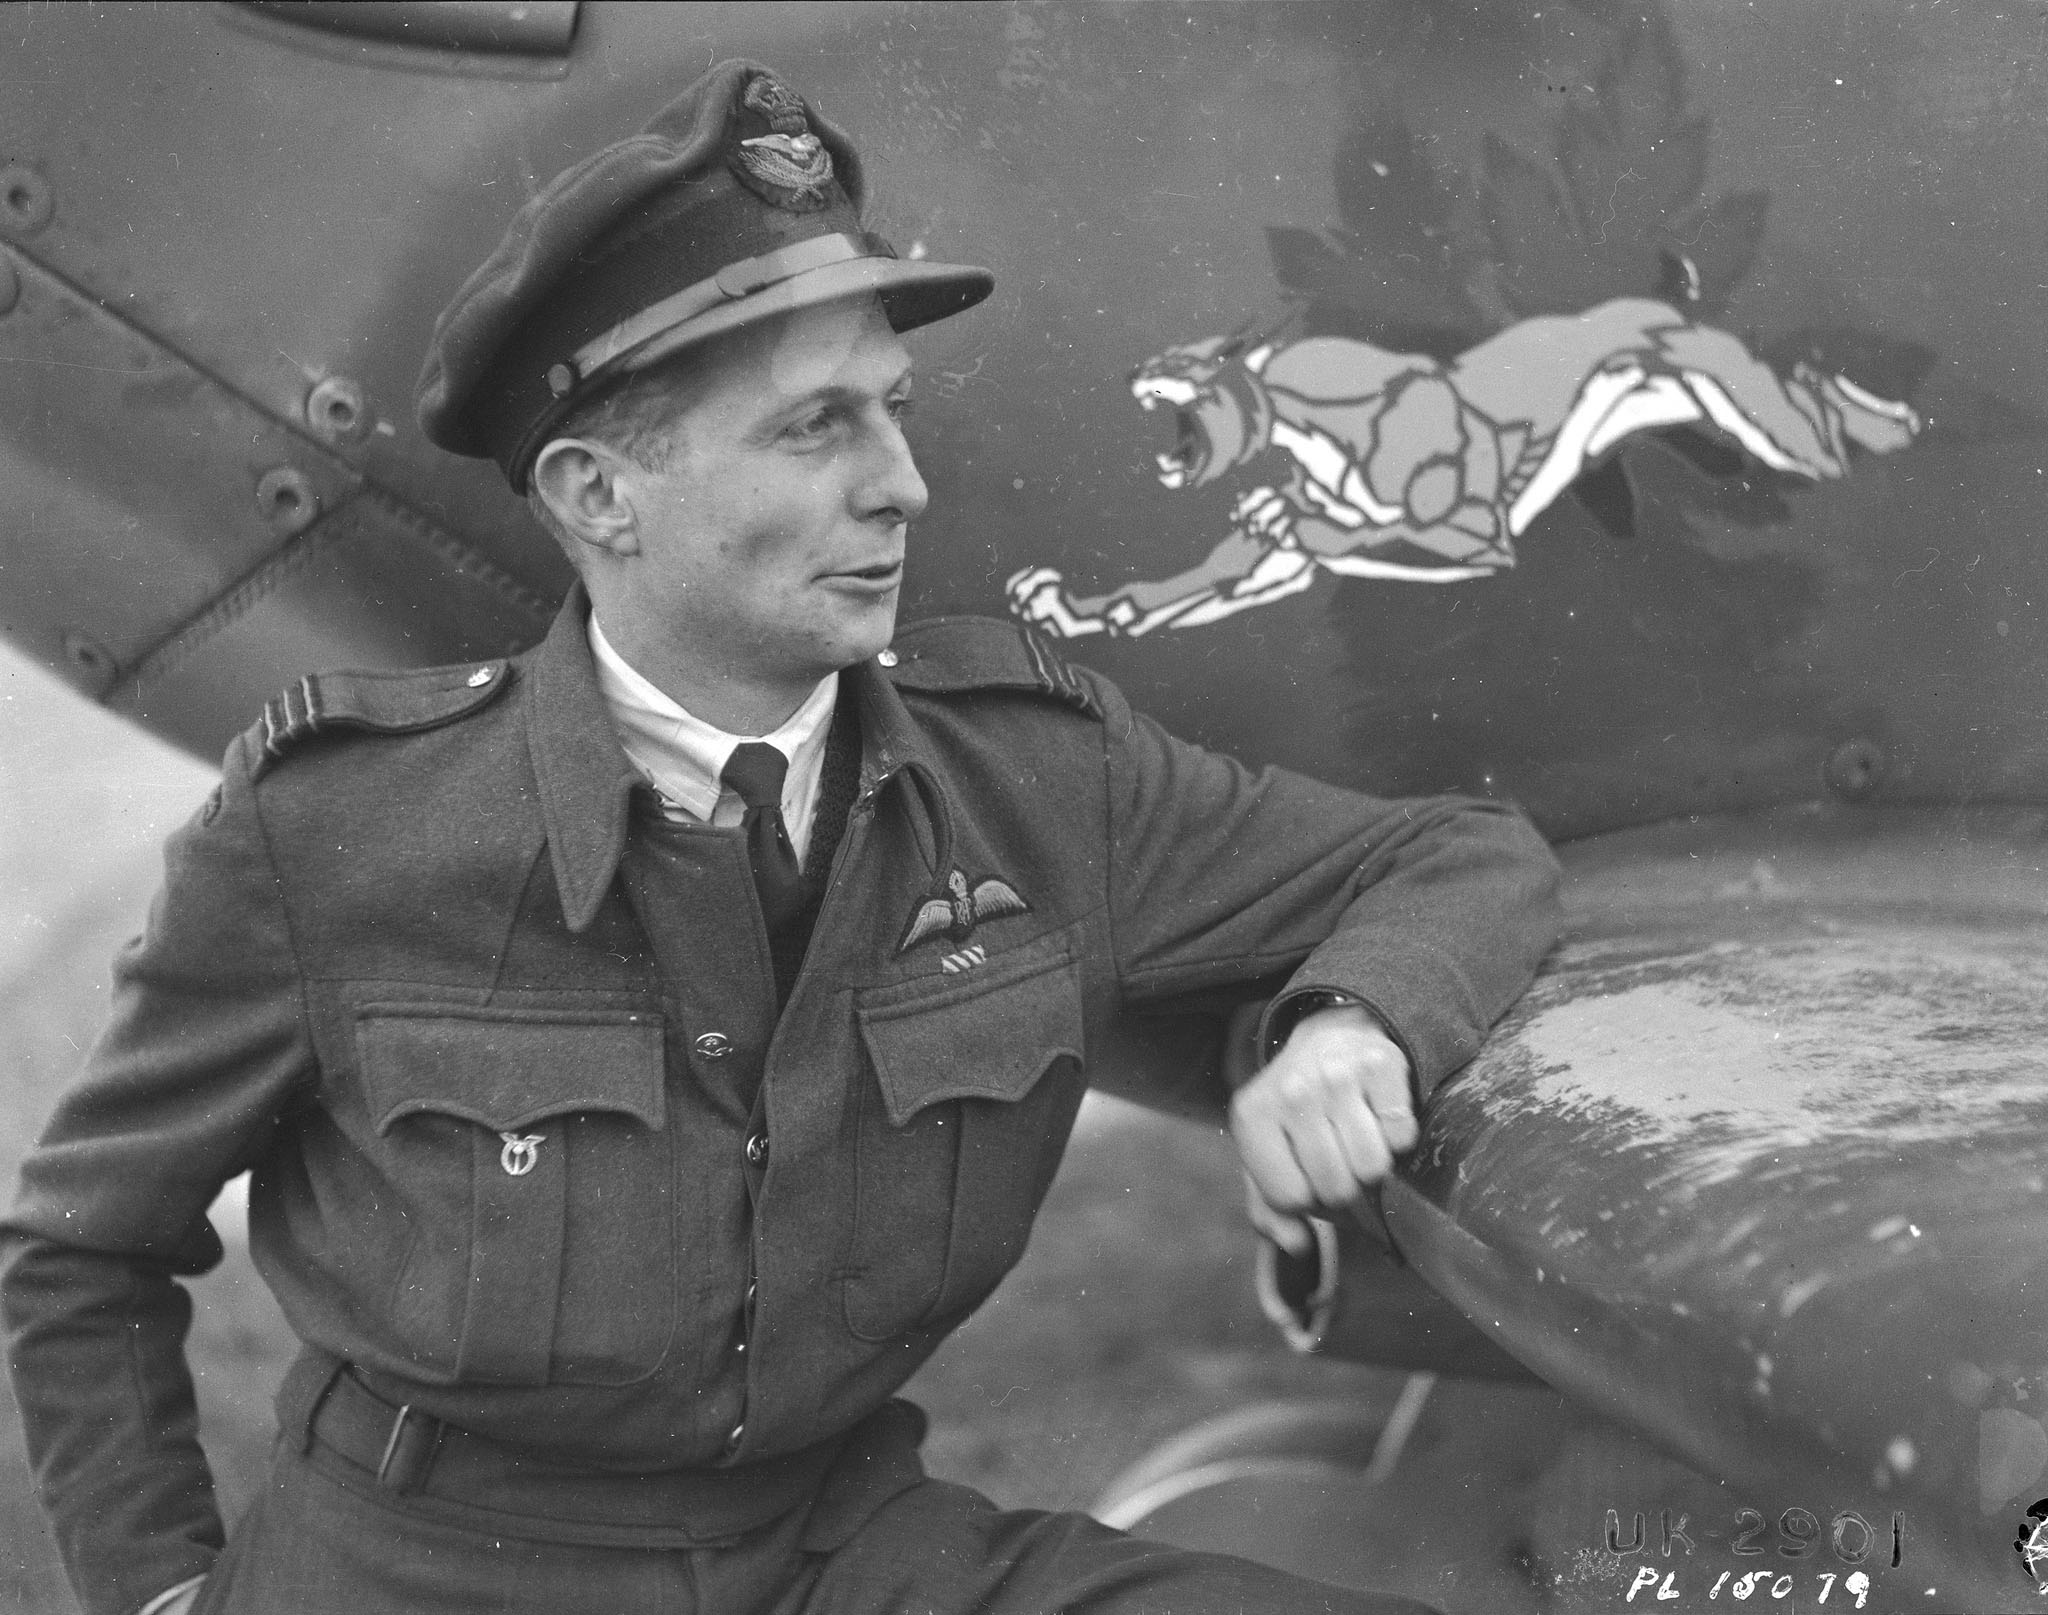 Squadron Leader Lloyd Chadburn, commanding officer of 416 Squadron, RCAF, won his Distinguished Flying Cross for leadership at Dieppe. He made multiple sorties in his Spitfire V. This photo was taken on December 3, 1942. PHOTO: DND Archives, PL-15079